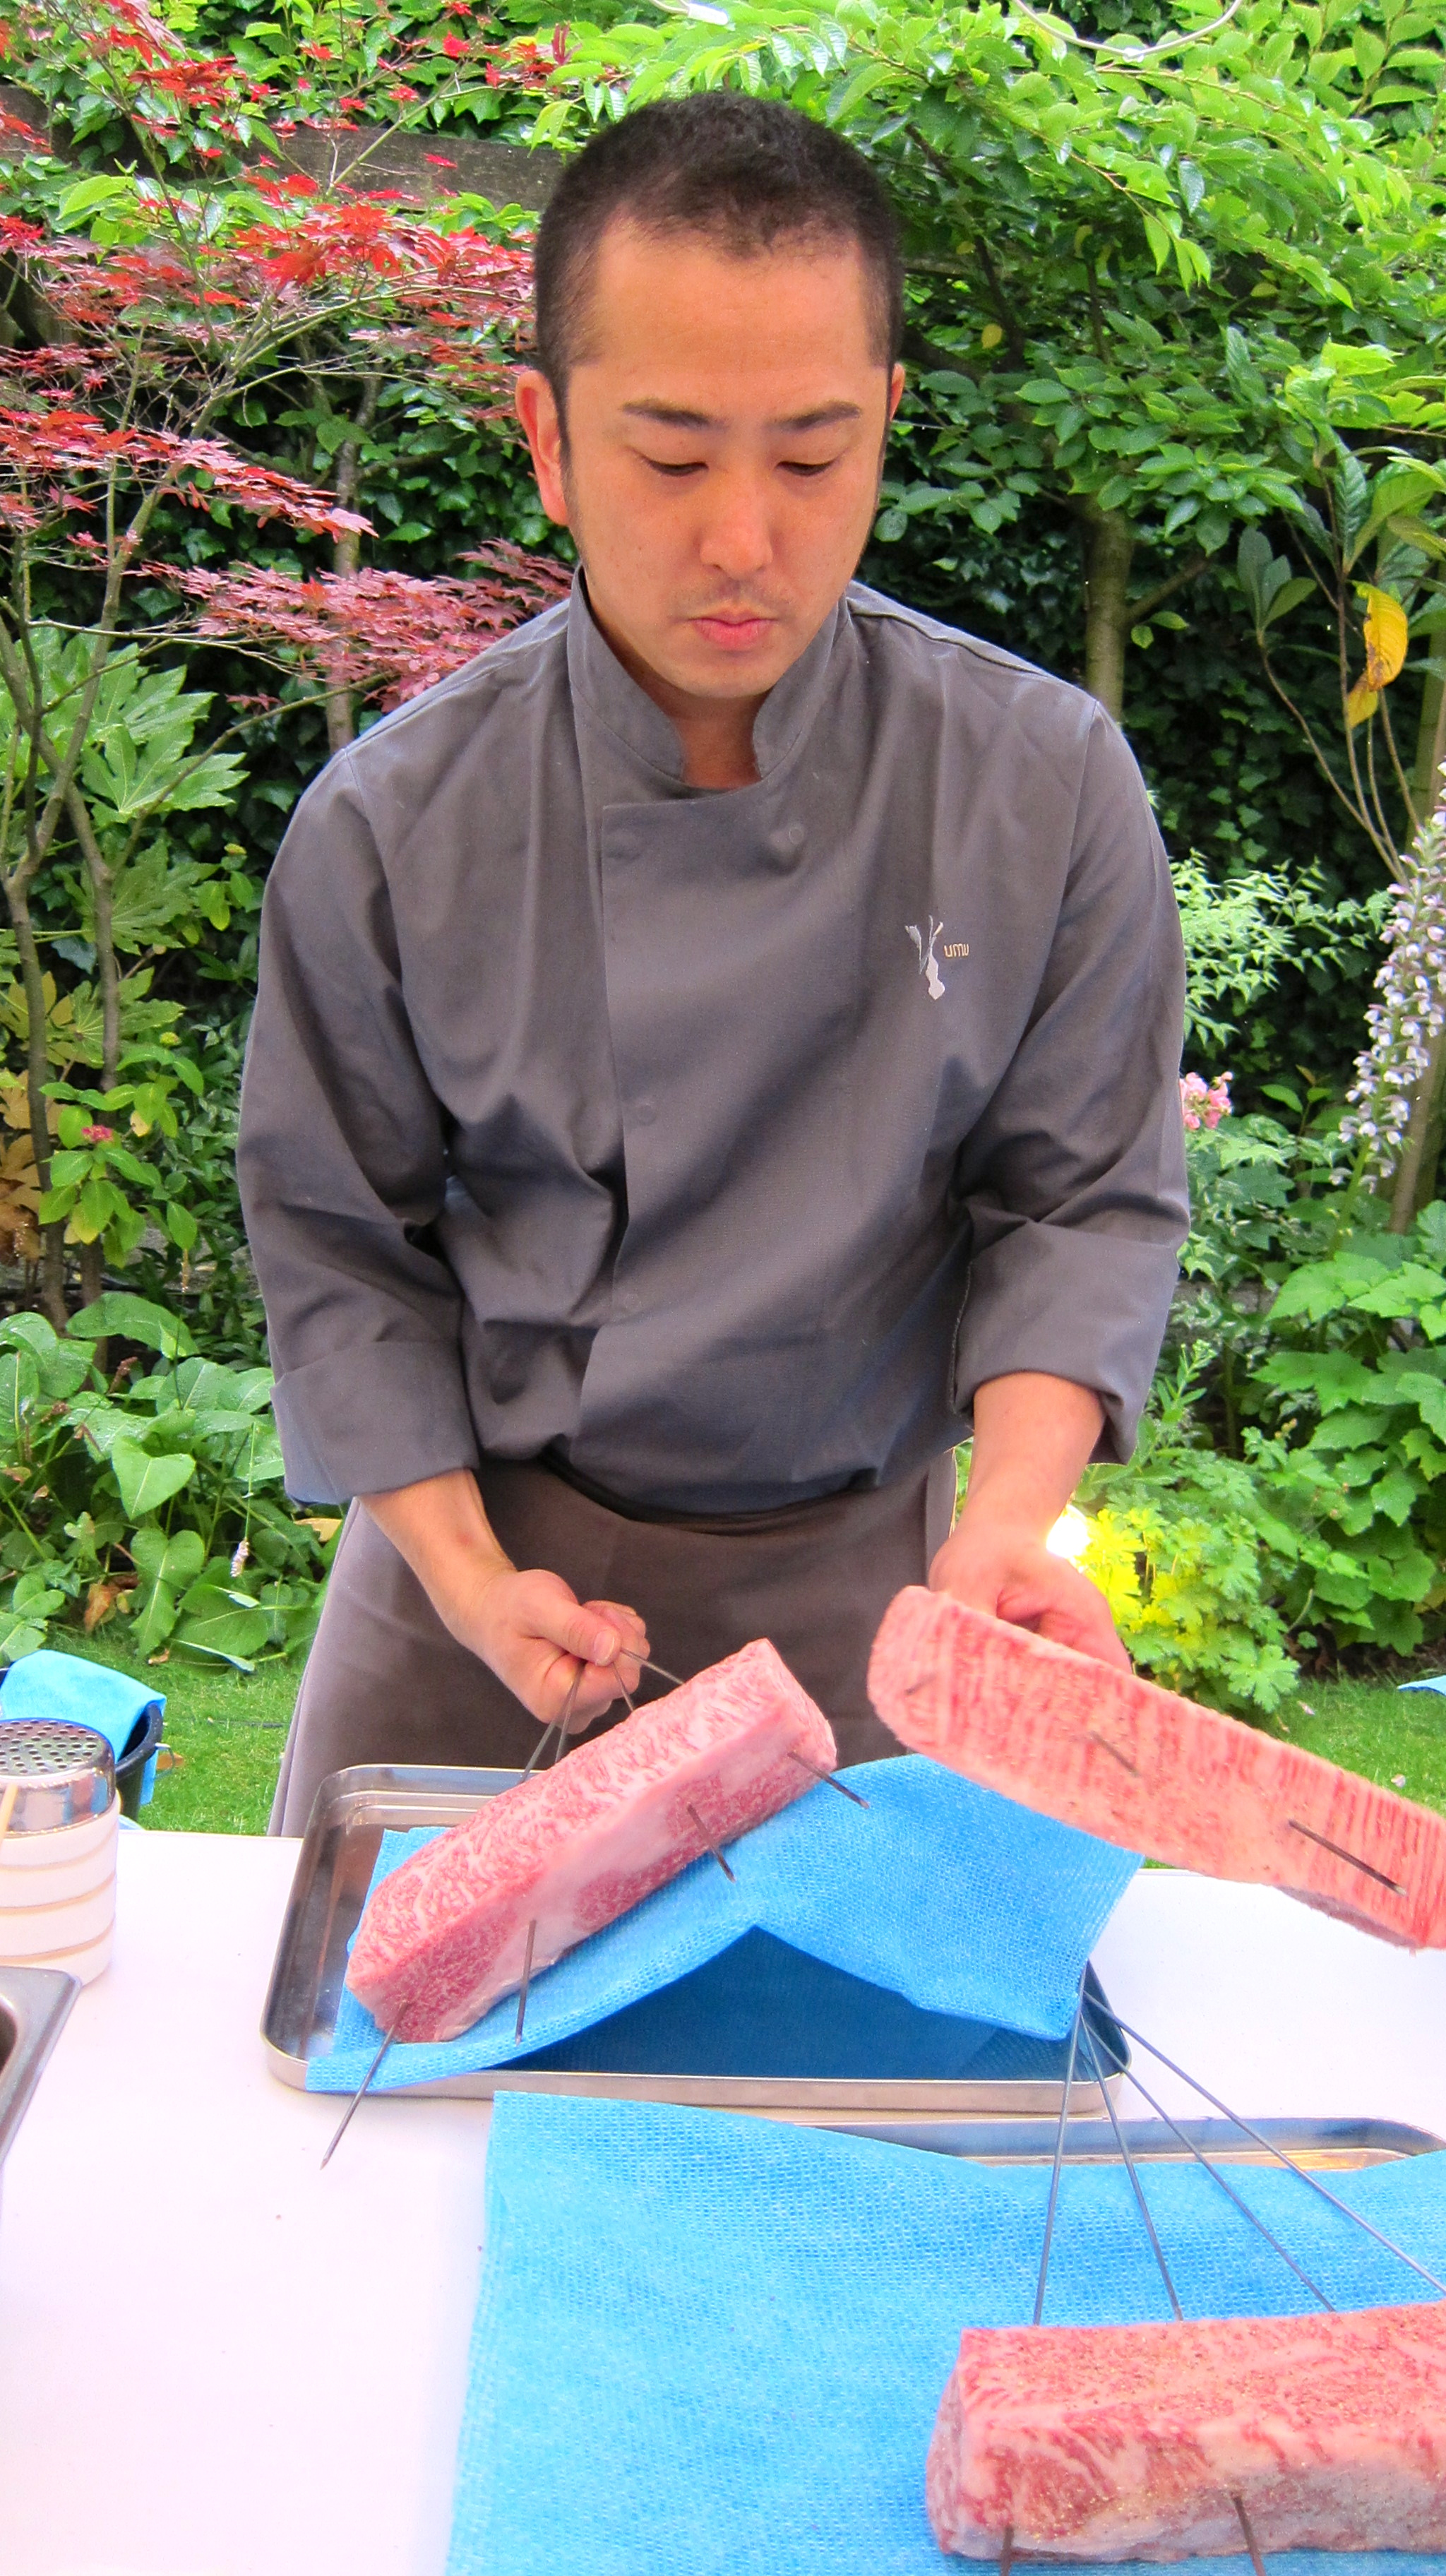 Wagyu Sirloin being prepared